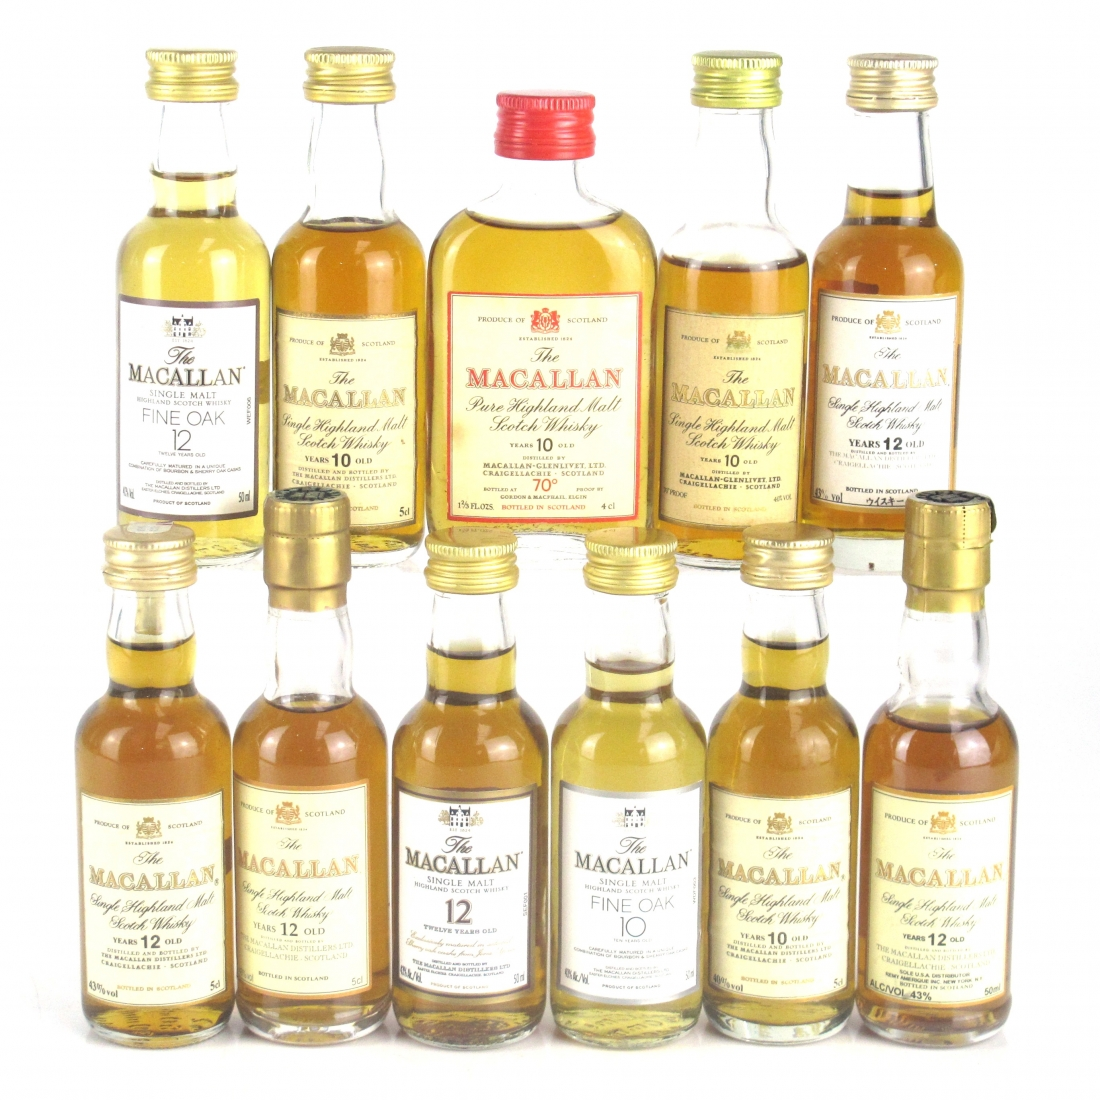 Macallan Miniature Selection x 11 / Including 10 Year Old 1970s